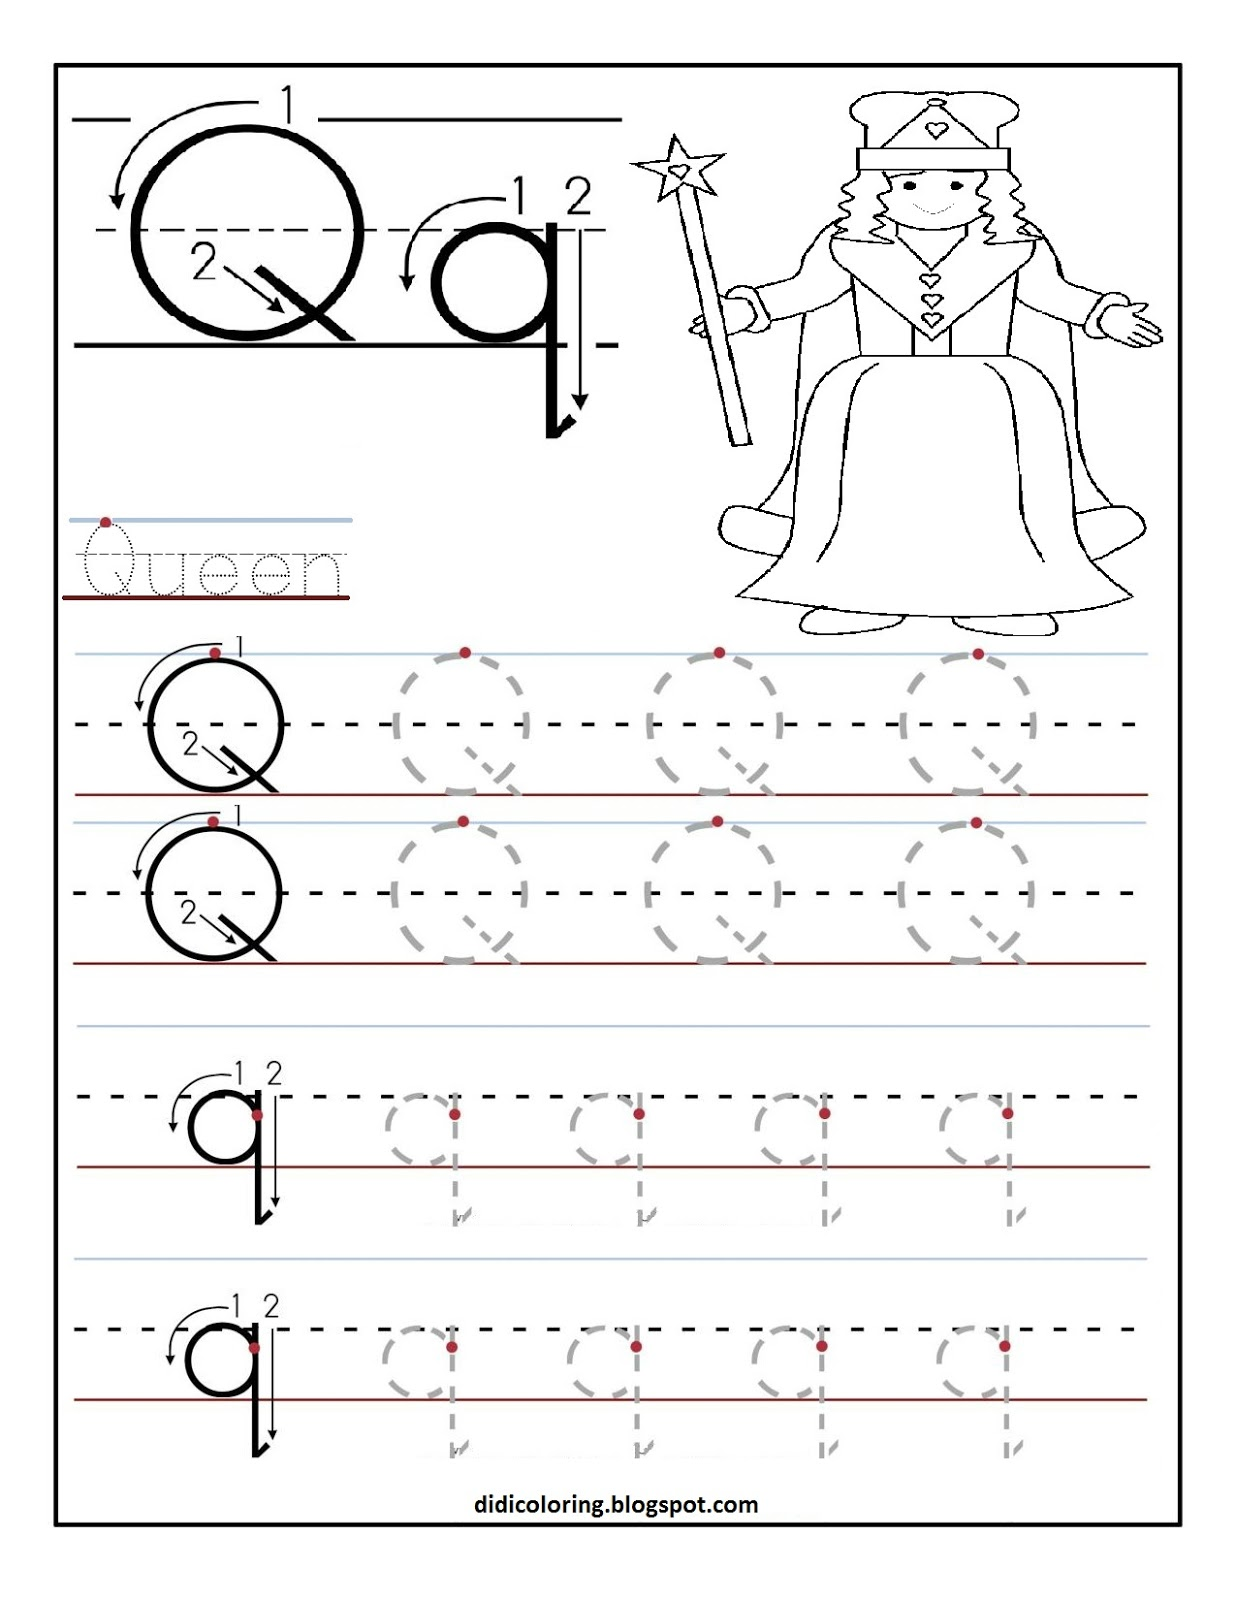 Alphabet Printables For Classroom And Home